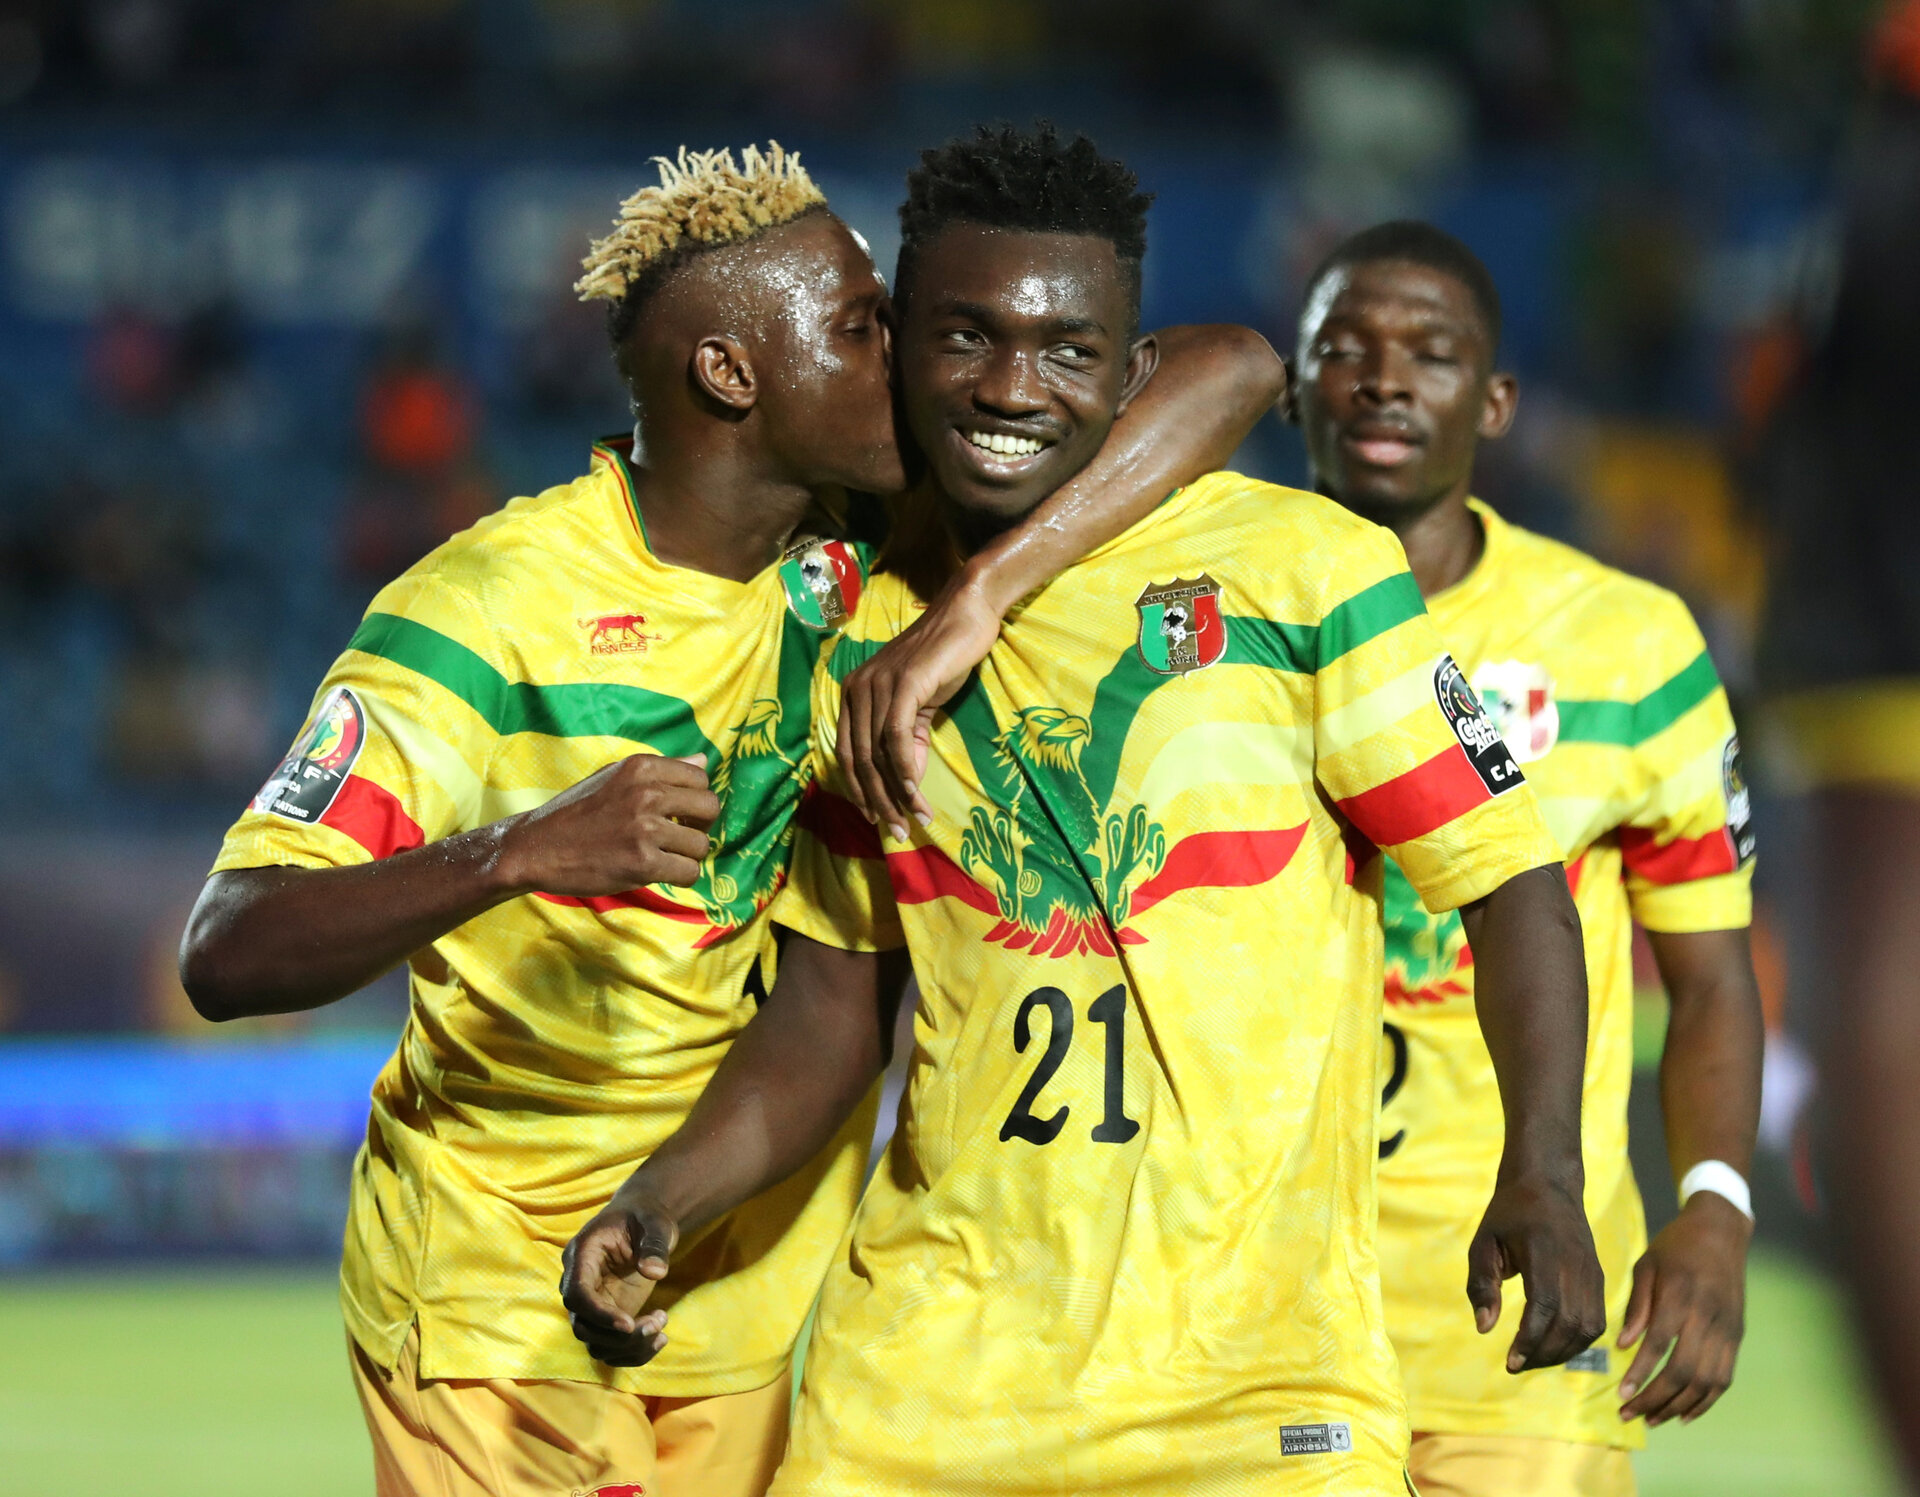 Soccer Football - Africa Cup of Nations 2019 - Group E - Mali v Mauritania - Suez Army Stadium, Suez, Egypt - June 24, 2019  Mali's Adama Traore celebrates scoring their third goal with Moussa Djenepo  REUTERS/Suhaib Salem